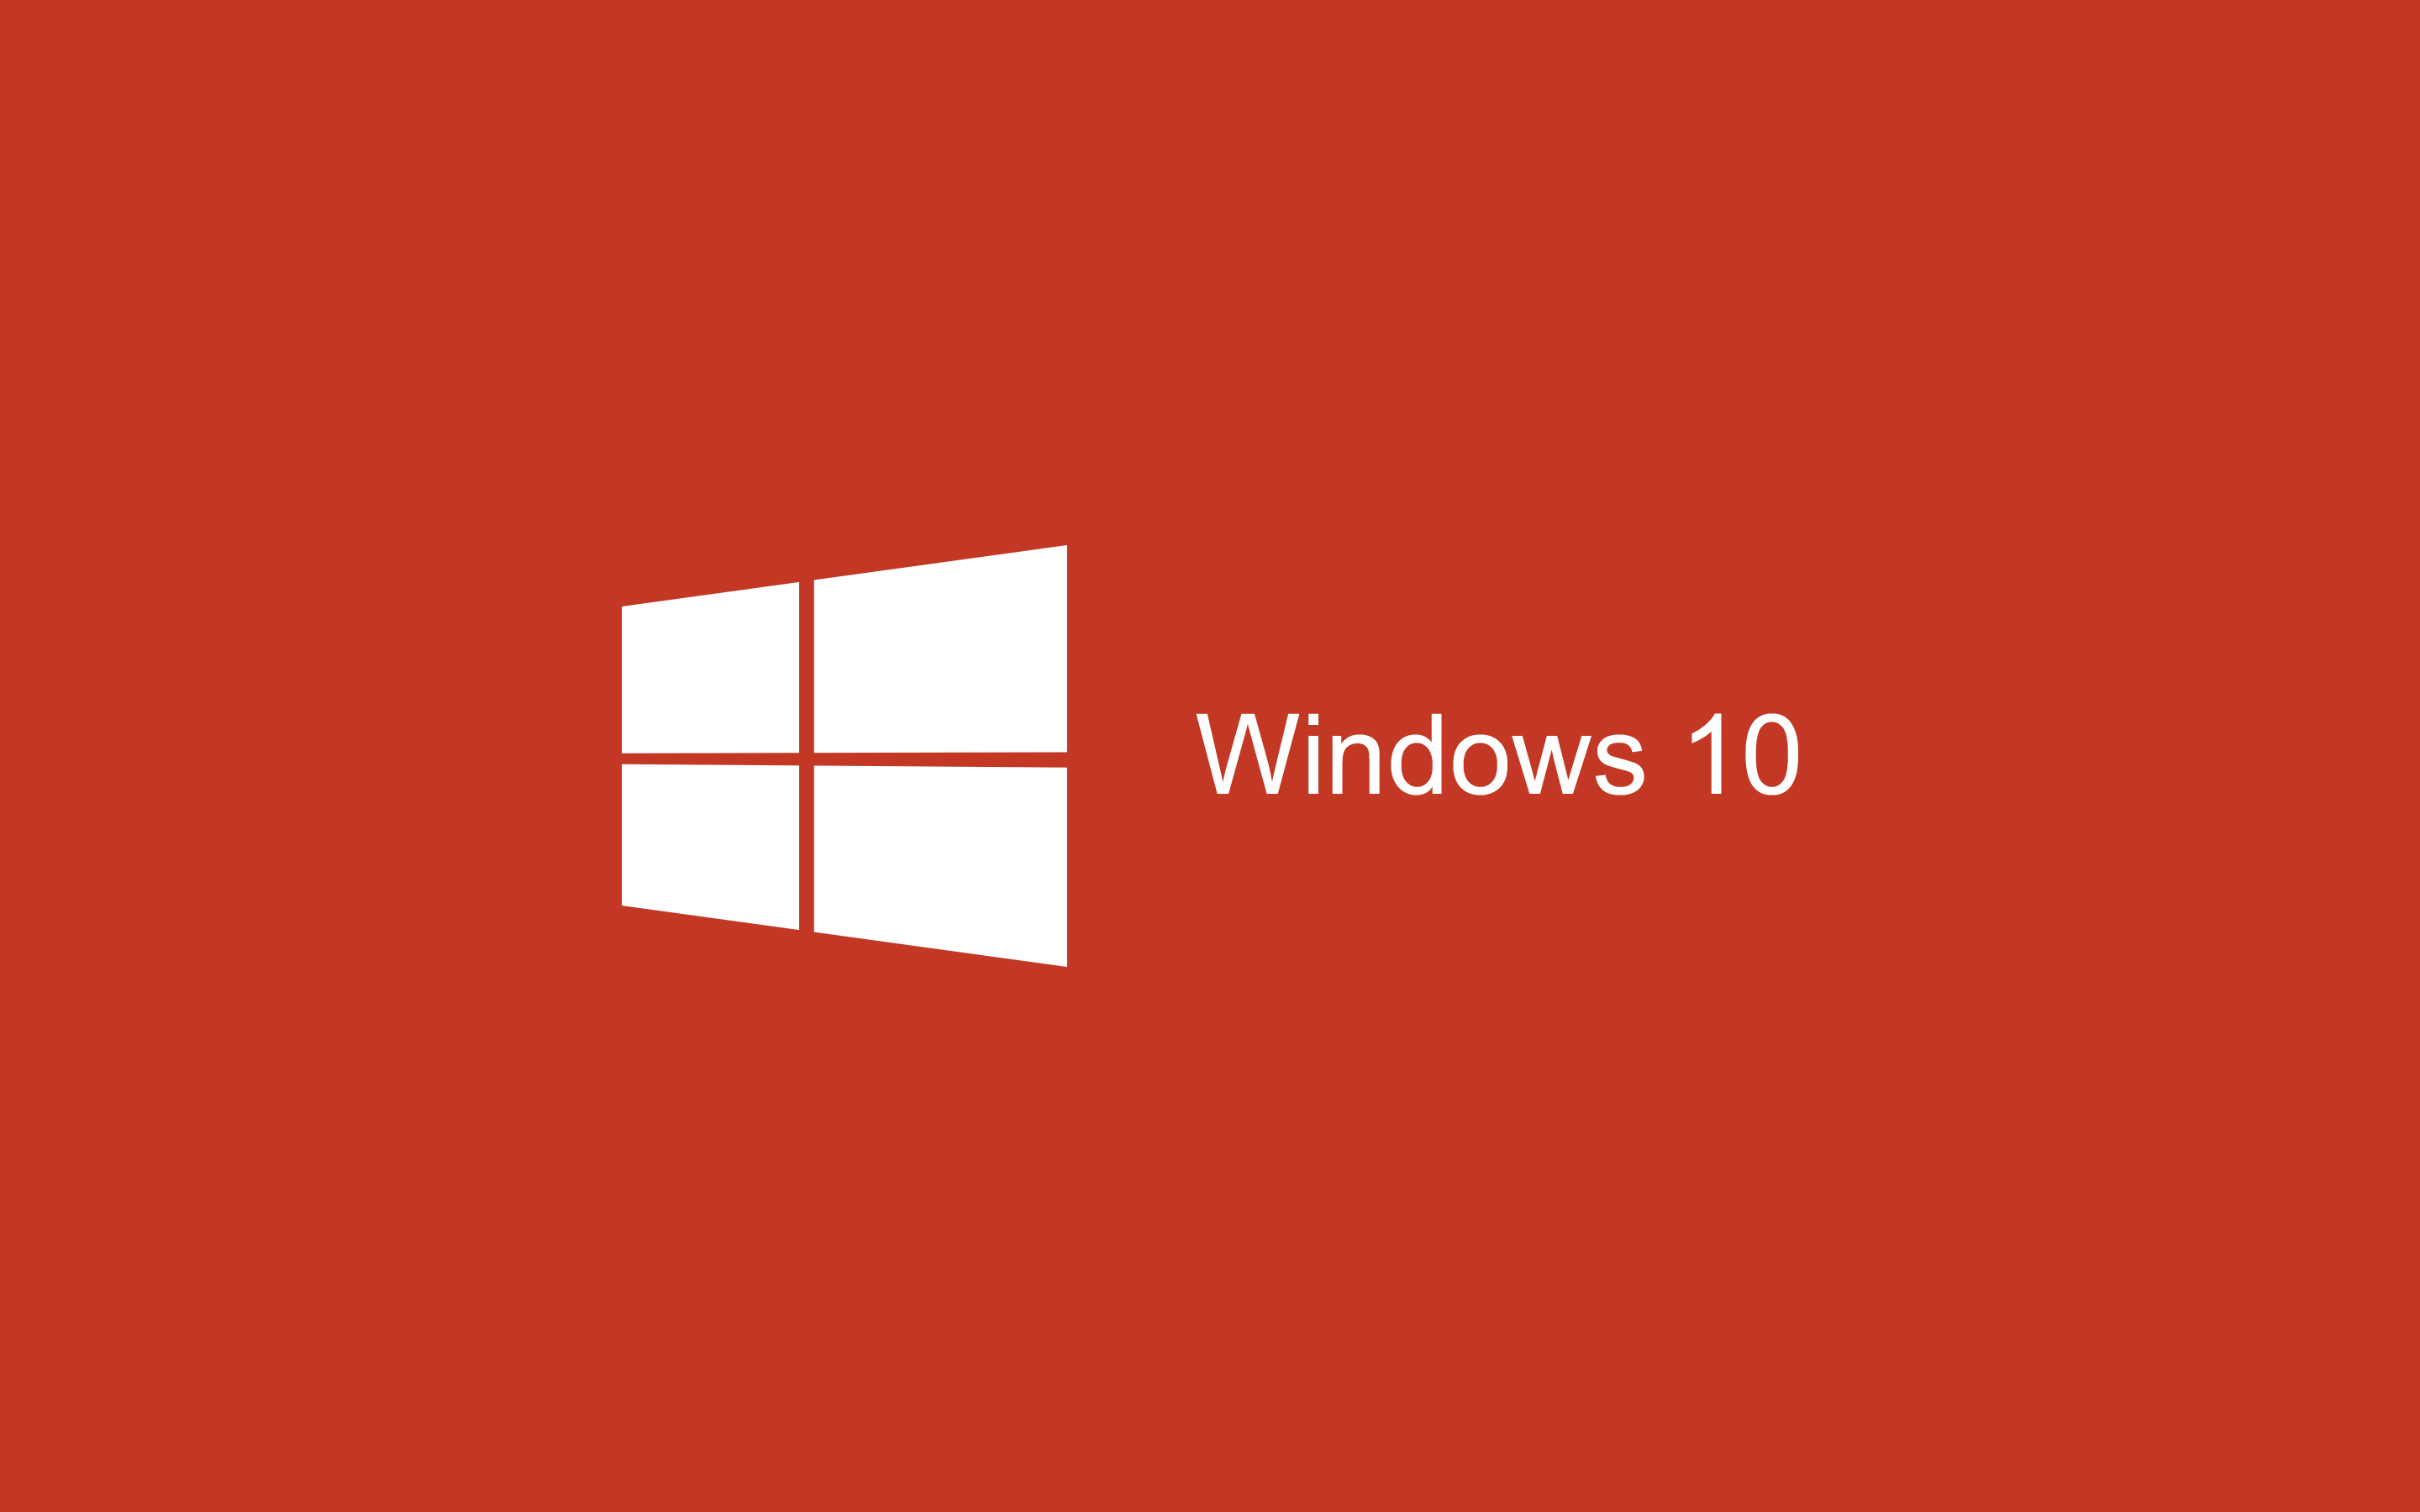 Windows-10-HD-Wallpaper-Plain-17